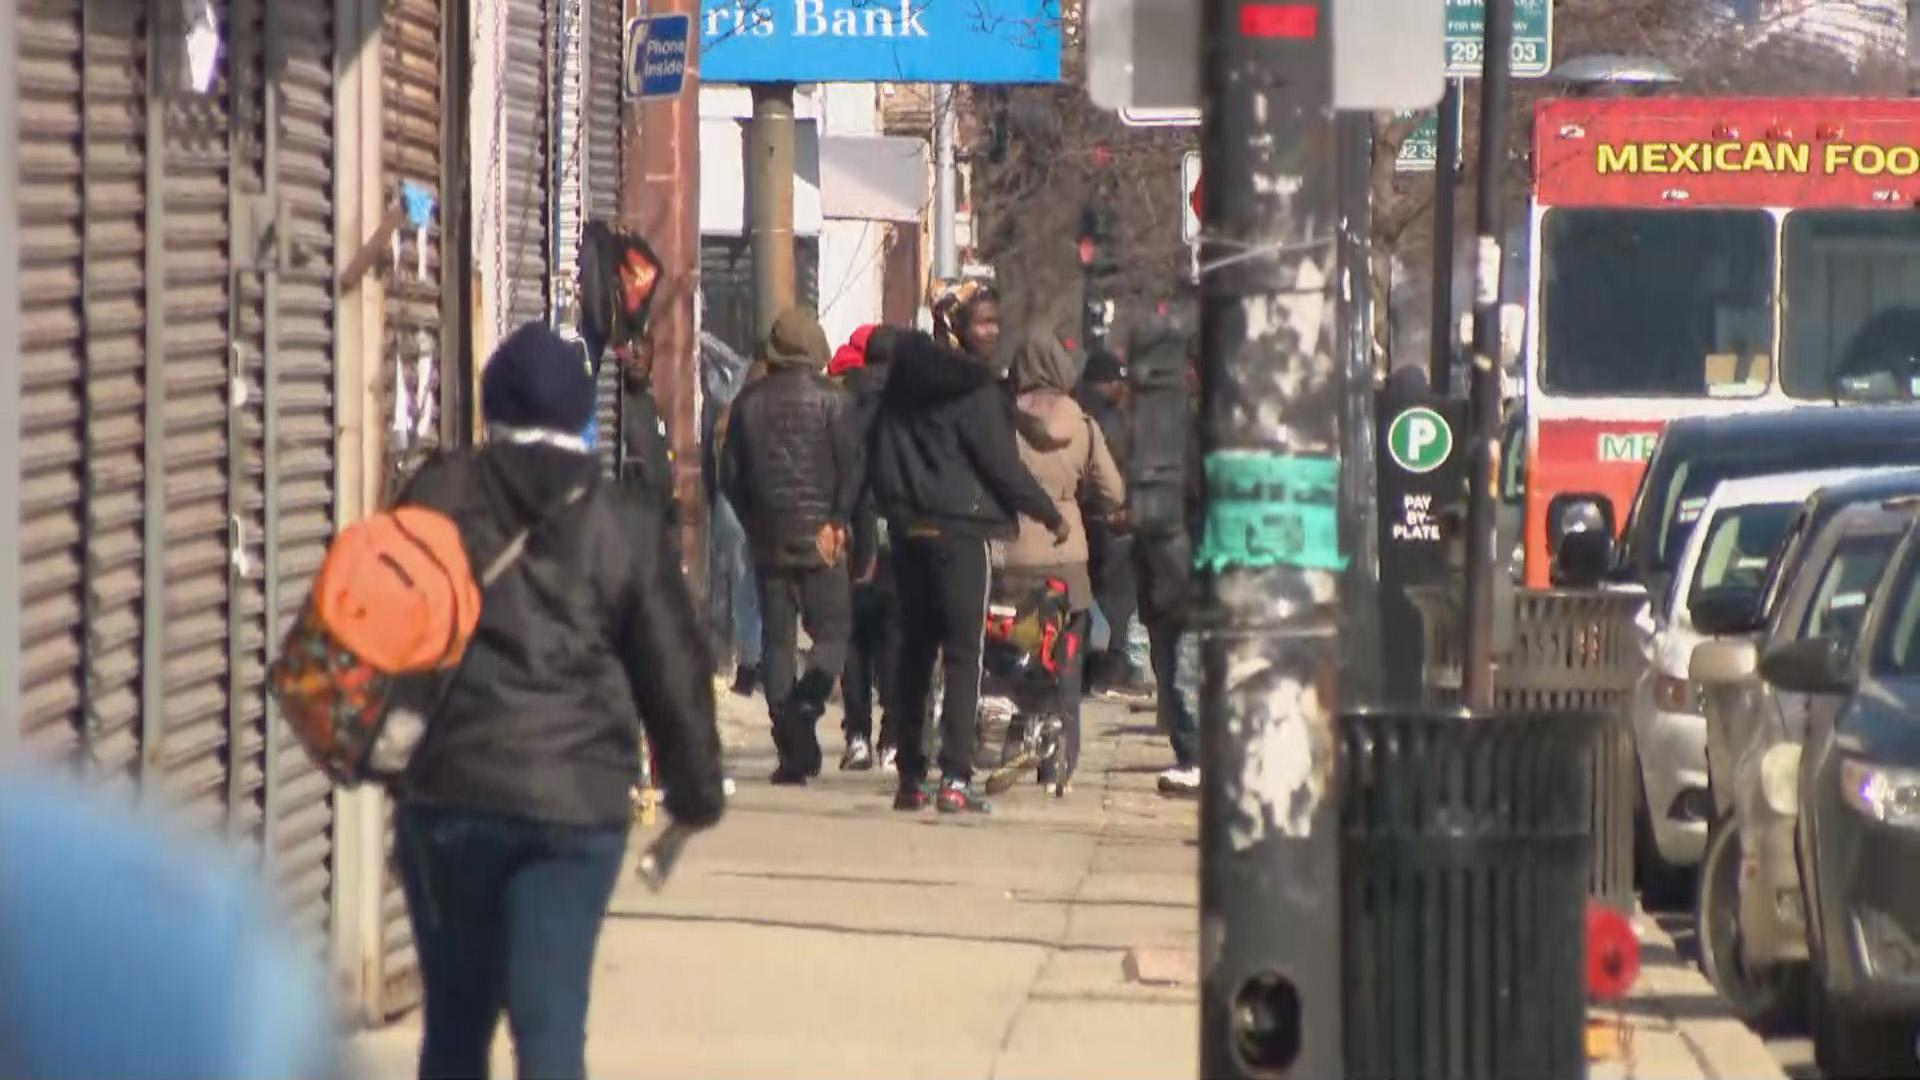 People walk along a busy street in Garfield Park on Wednesday, April 1, 2020. (WTTW News)